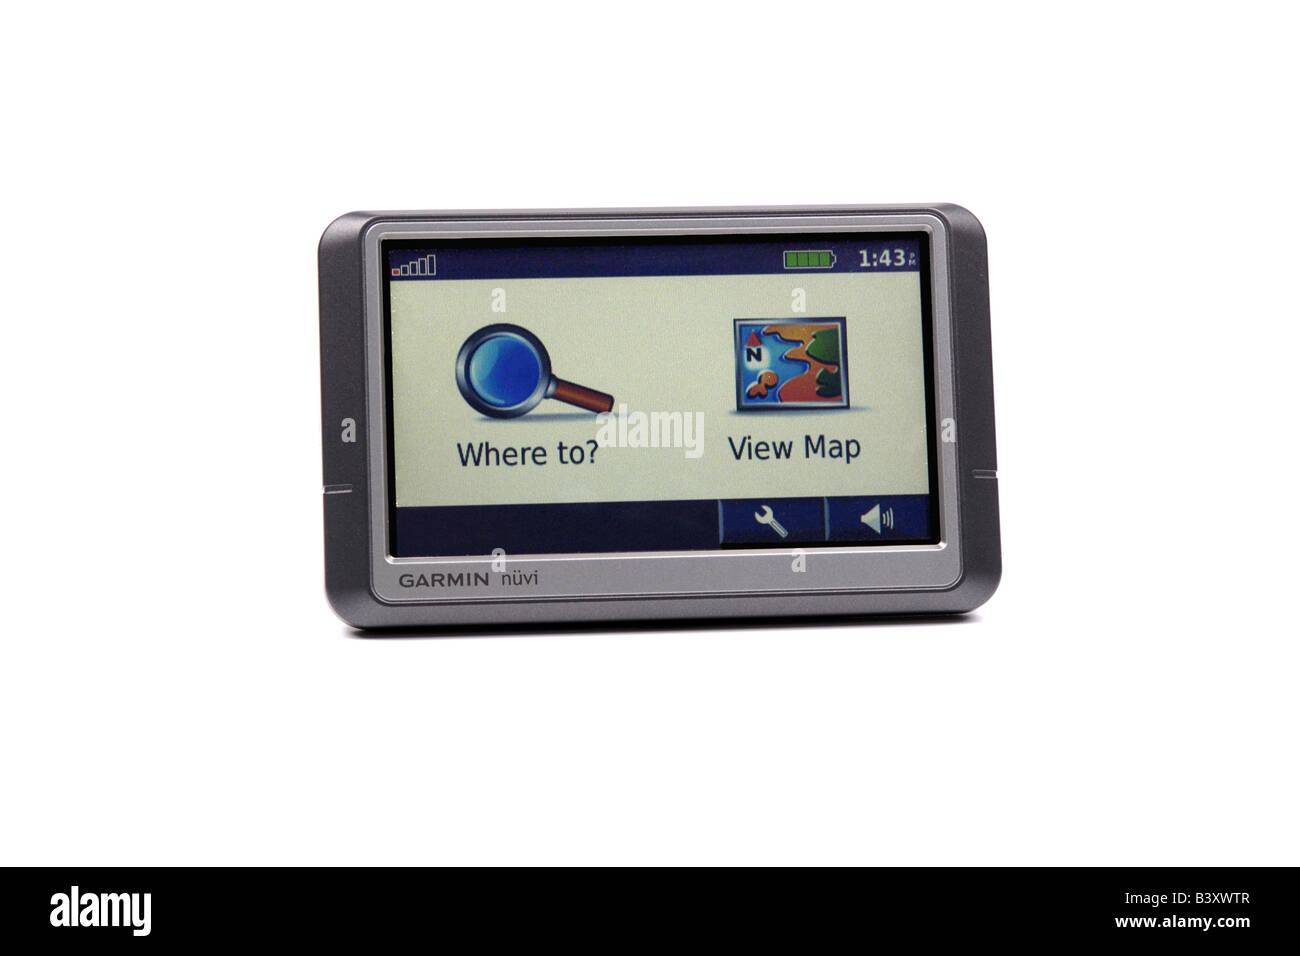 Garmin Nuvi Portable Satellite Navigation System against a white background - Stock Image